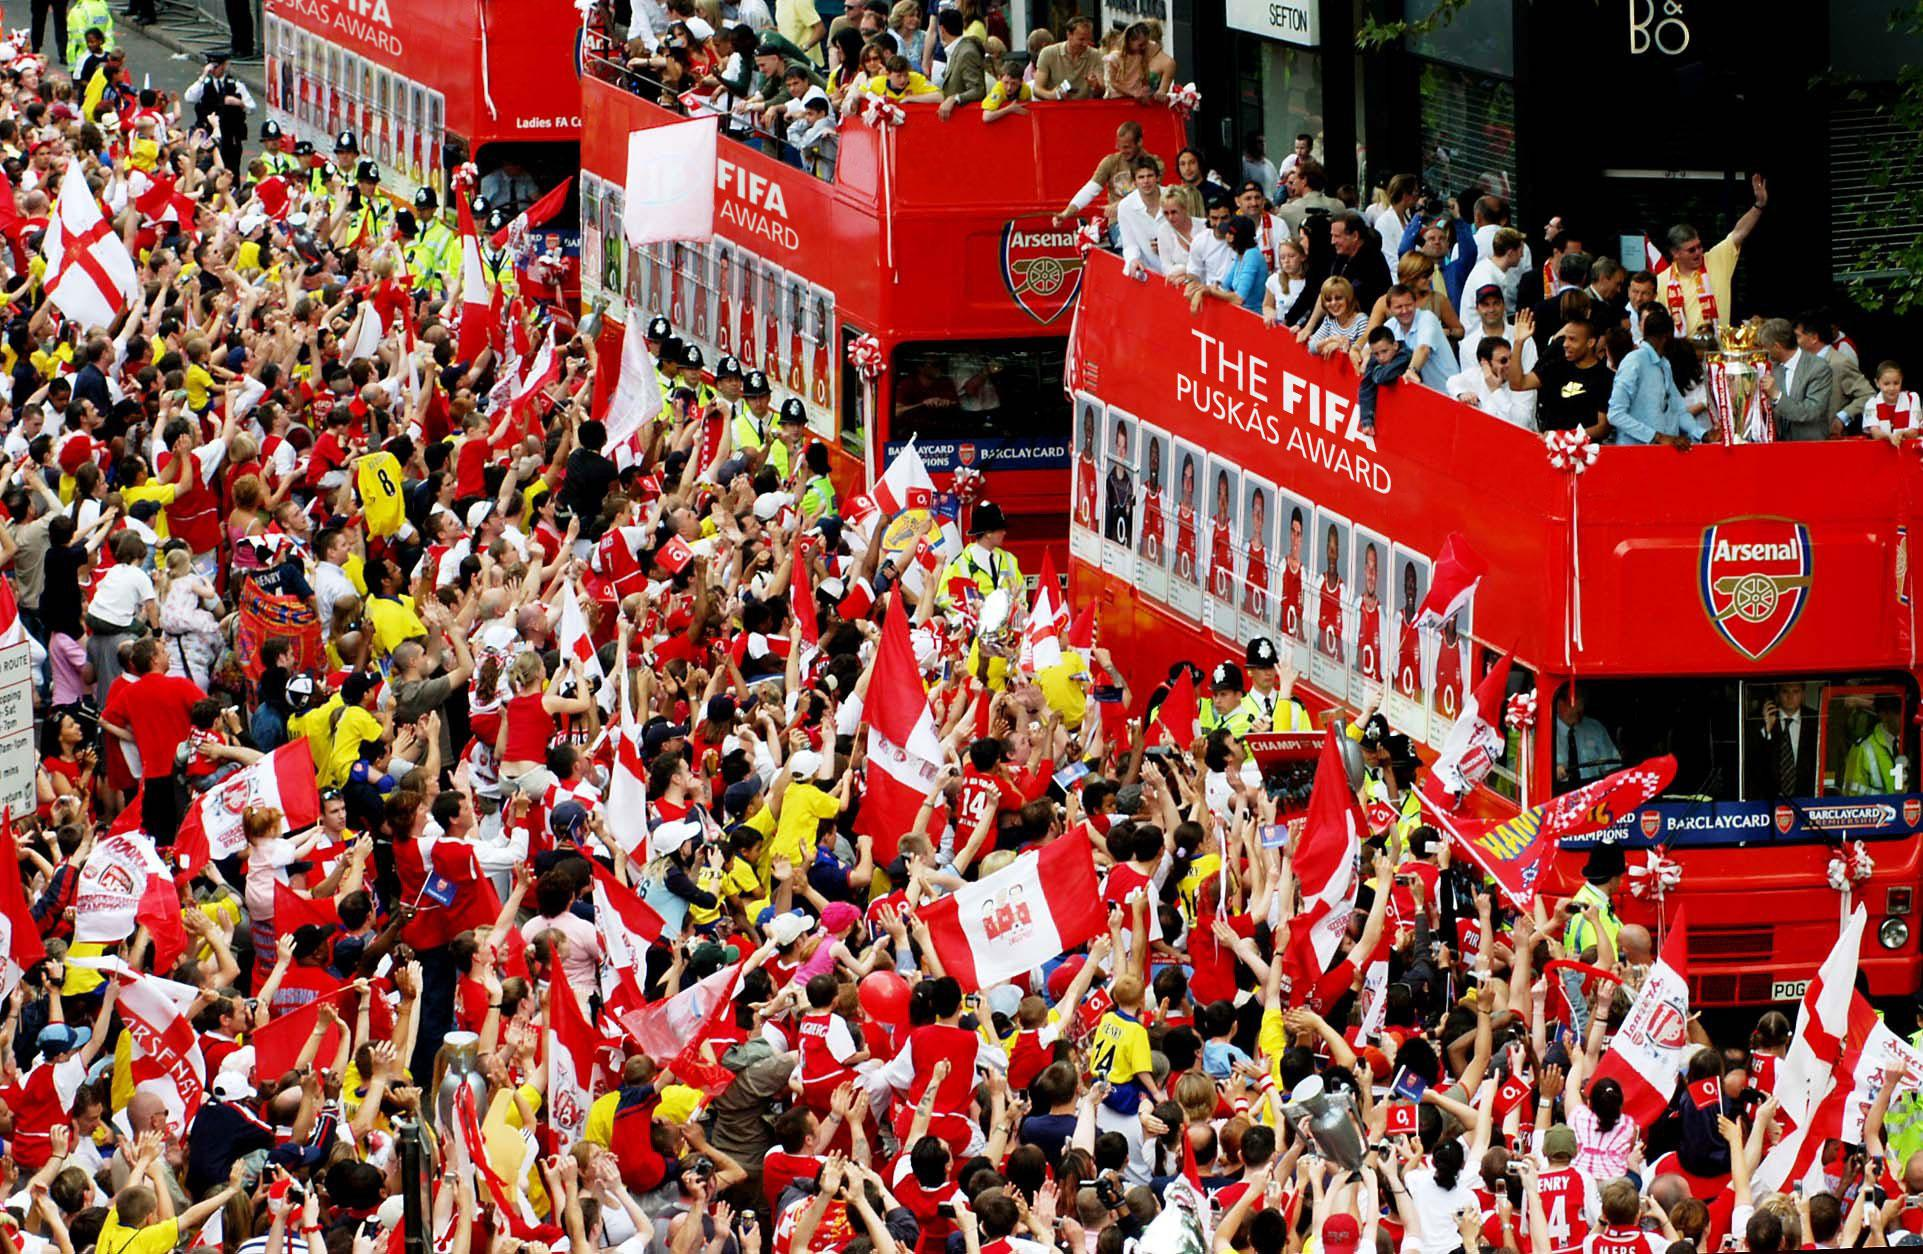 An artist's impression on how the Puskas Award open top bus parade may, but probably won't, look like